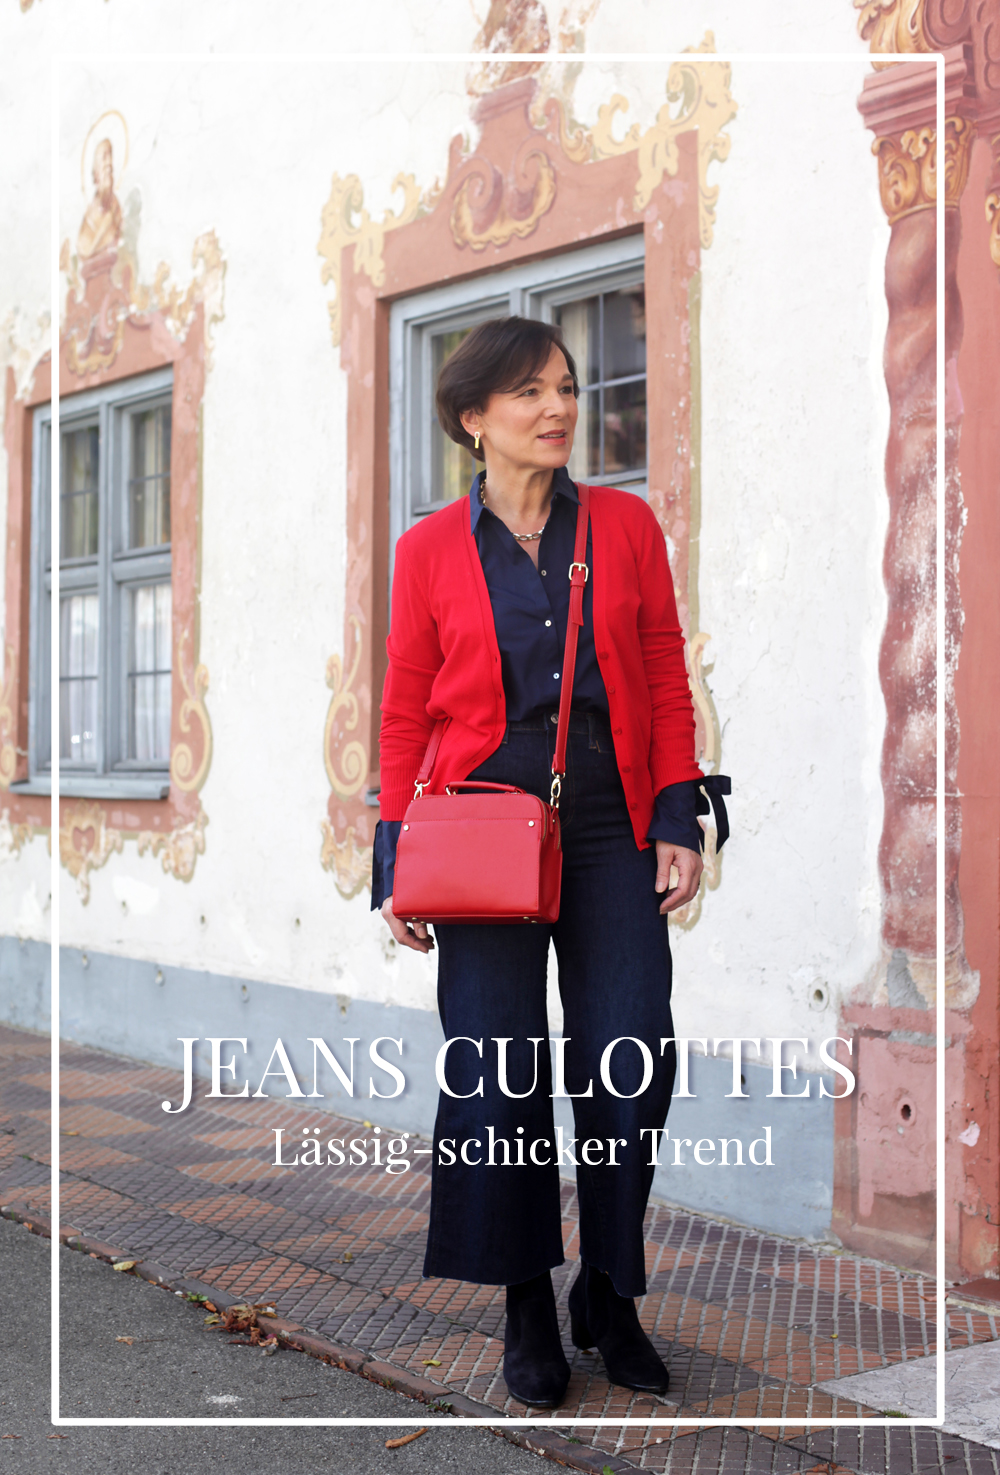 Weite Culottes H&M Conscious Collection Stiefeletten Styling kleine Frauen 50plus LadyofStyle